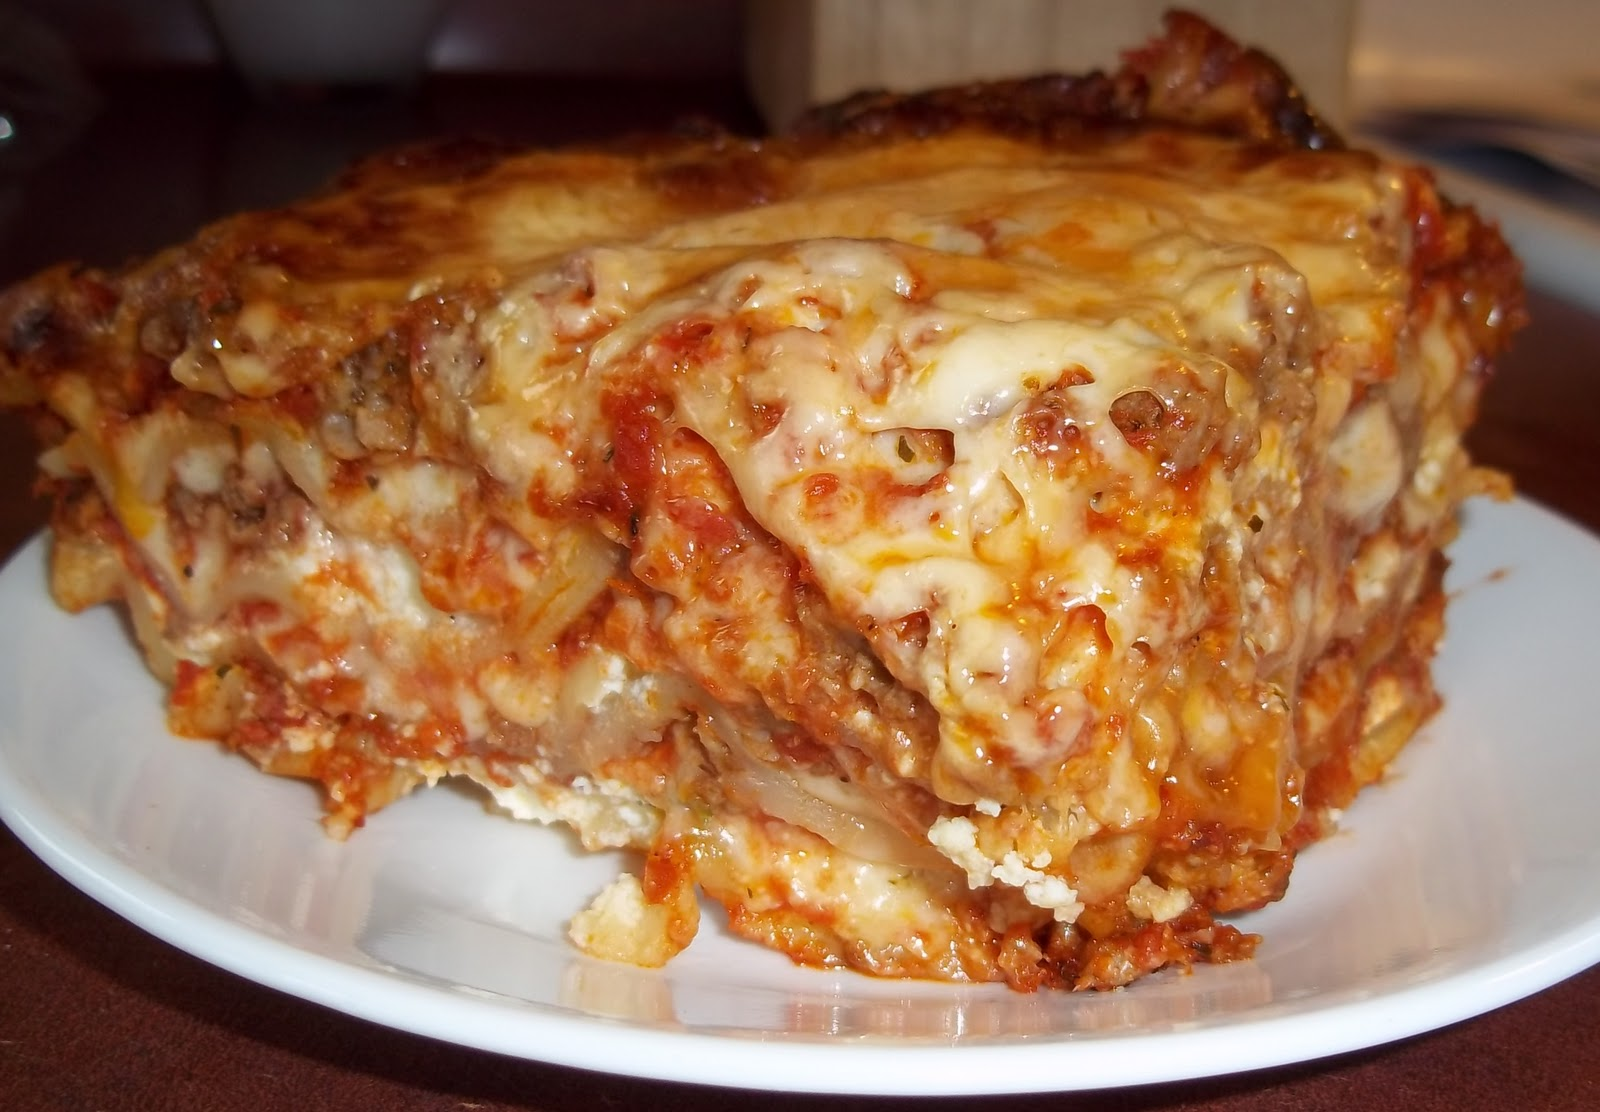 The Daily Smash: Two Meat Lasagna